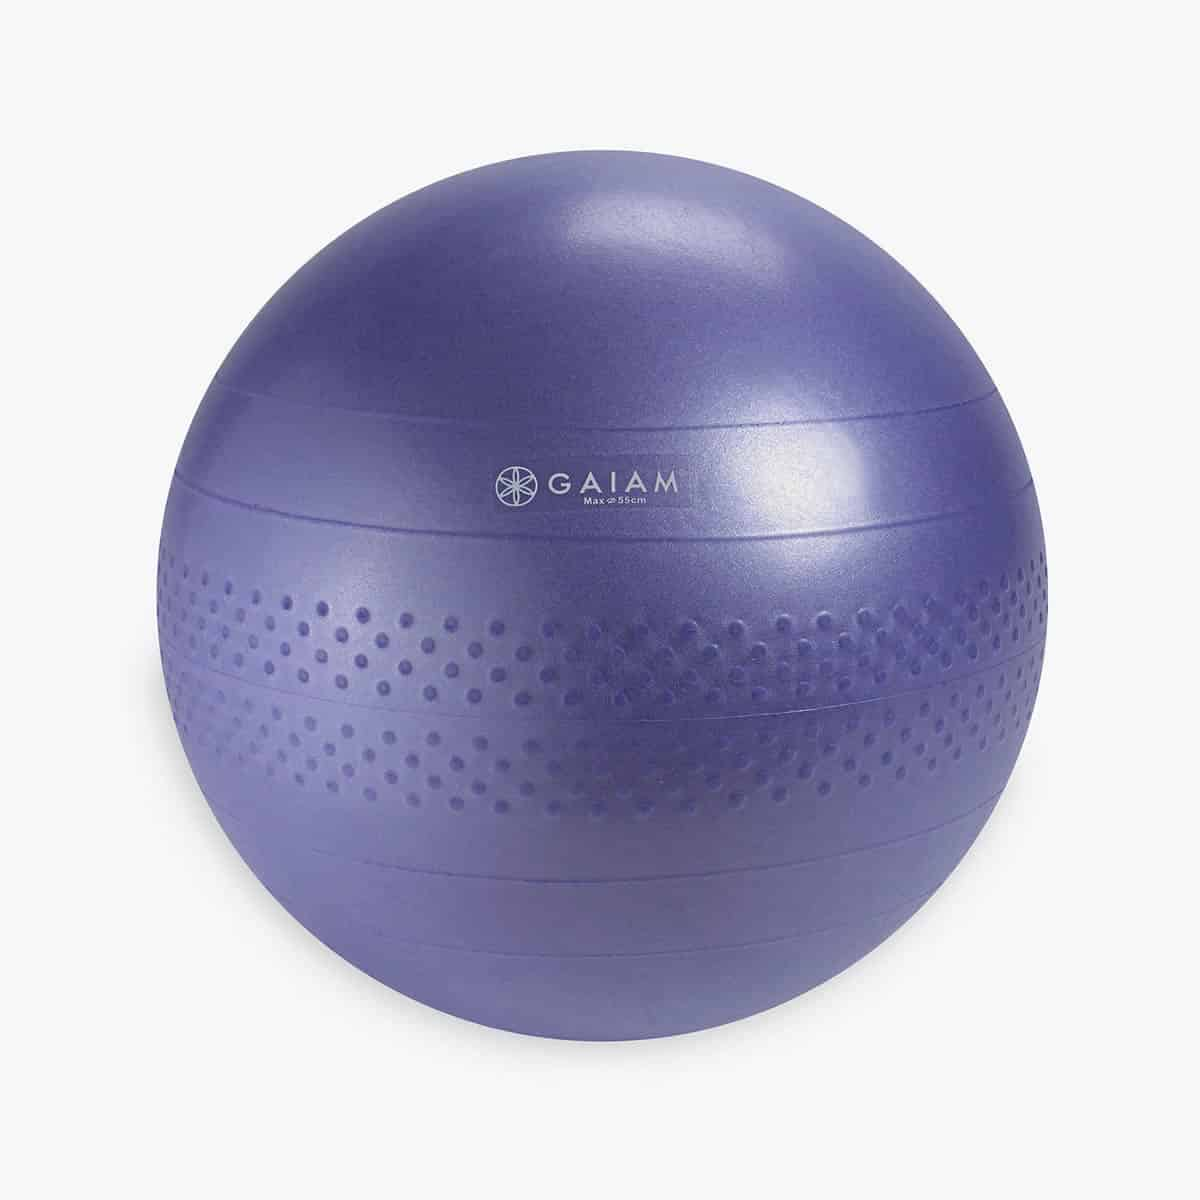 A picture of a purple balance ball.